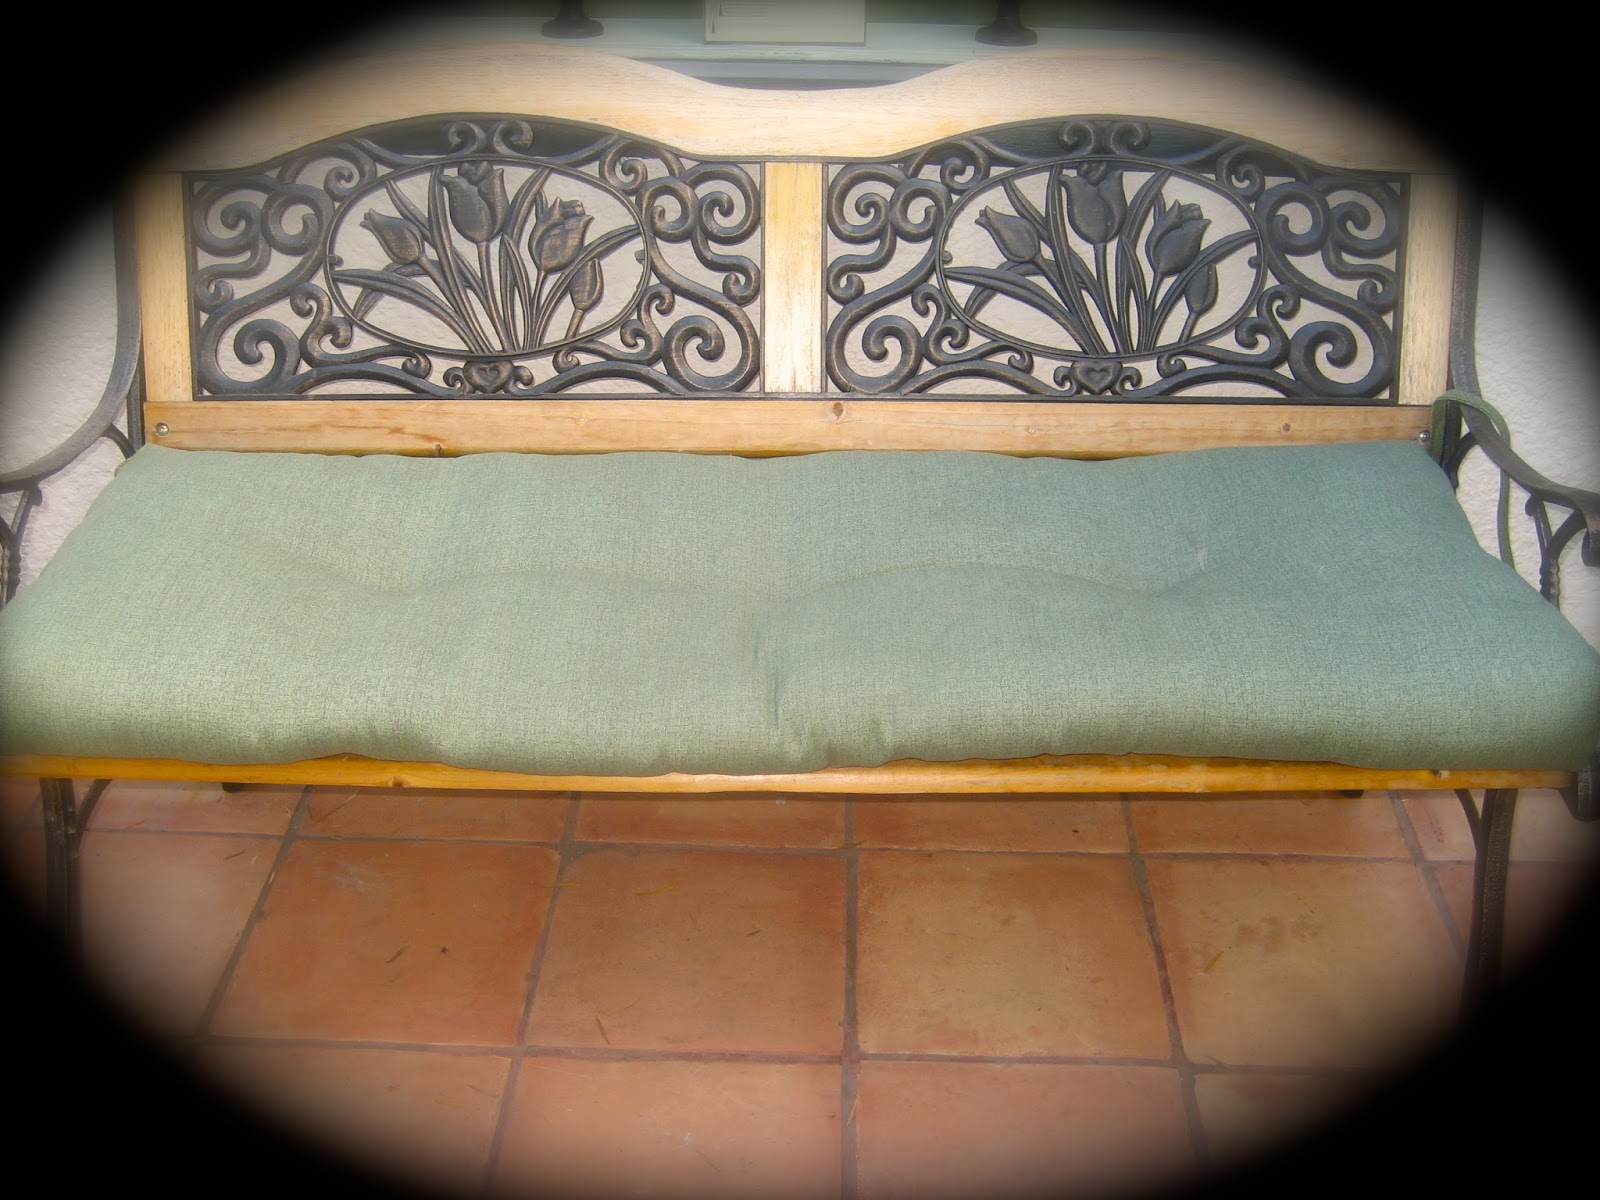 Sew Glorious Homemade Park Bench Cushion Cover And Throw Pillows